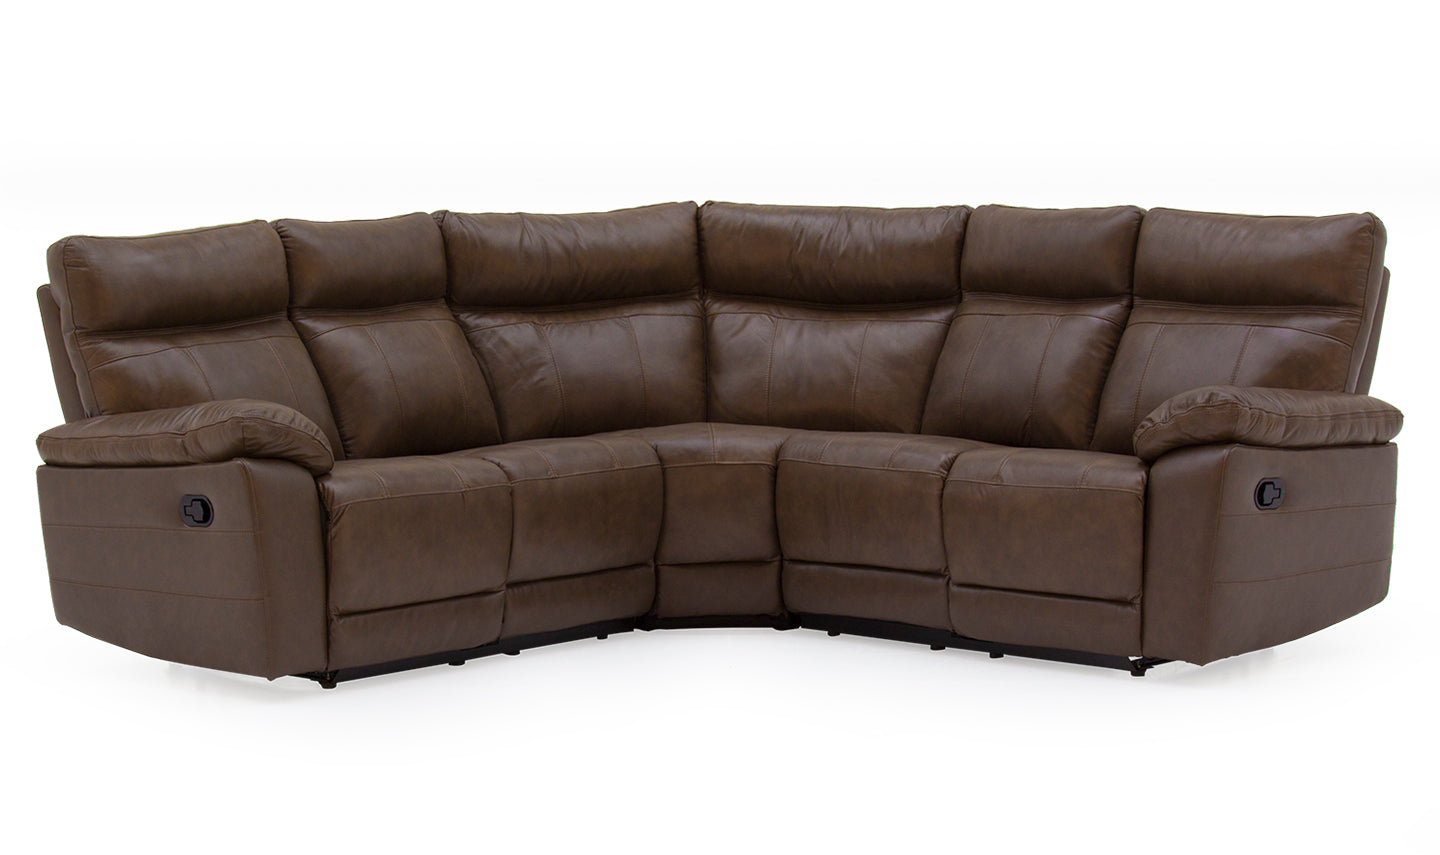 Corner Group Sofa Leather - Brown